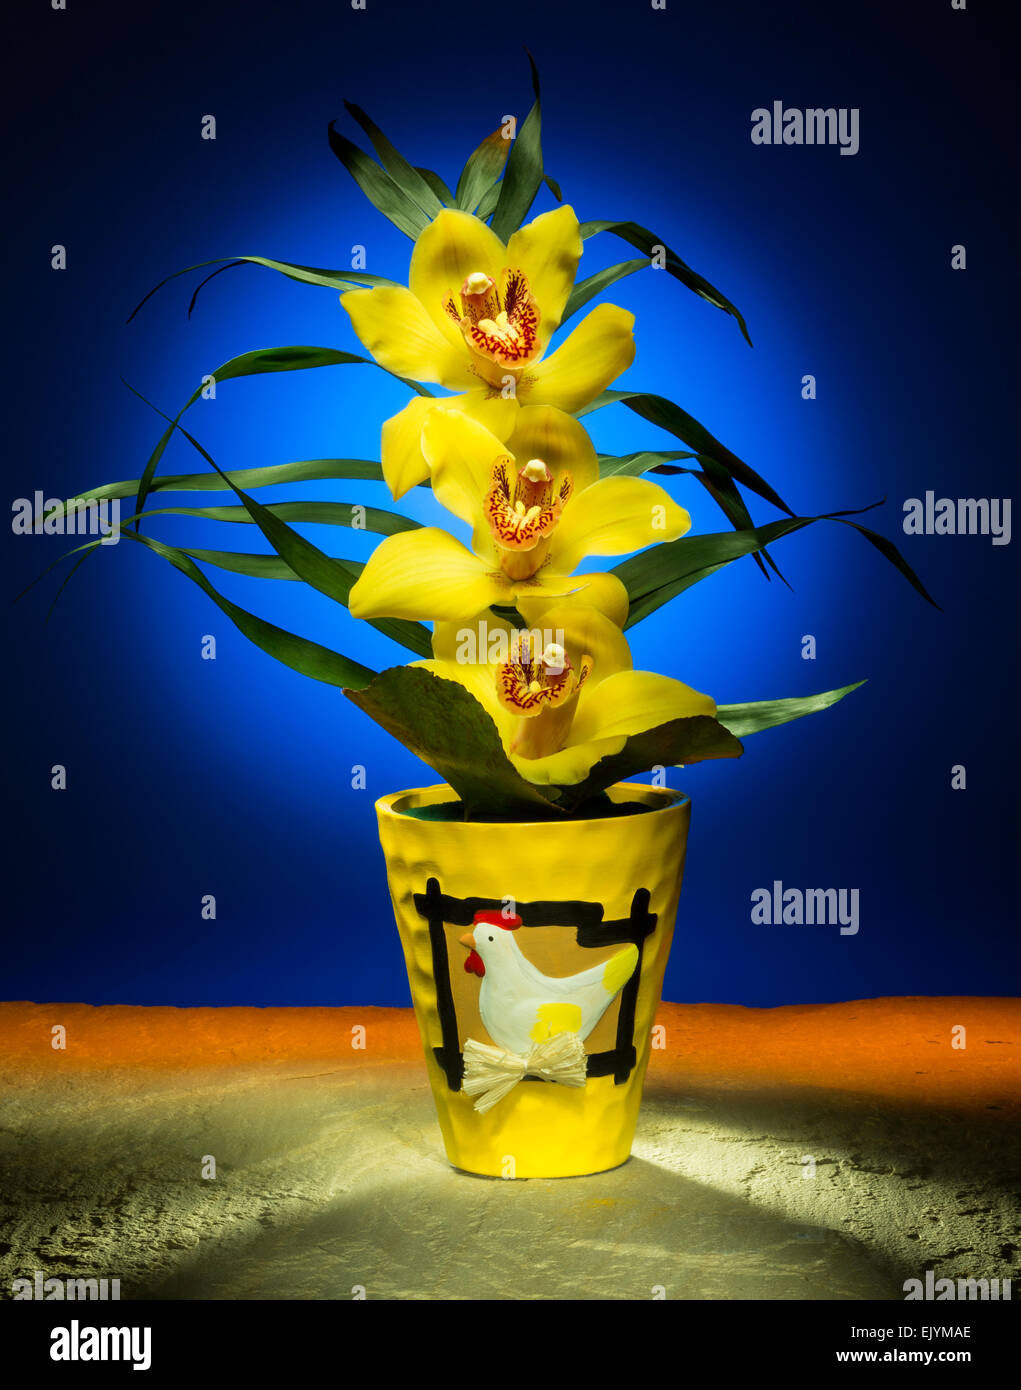 An Easter orchid - Studio still life image photographed using light painting techniques. - Stock Image